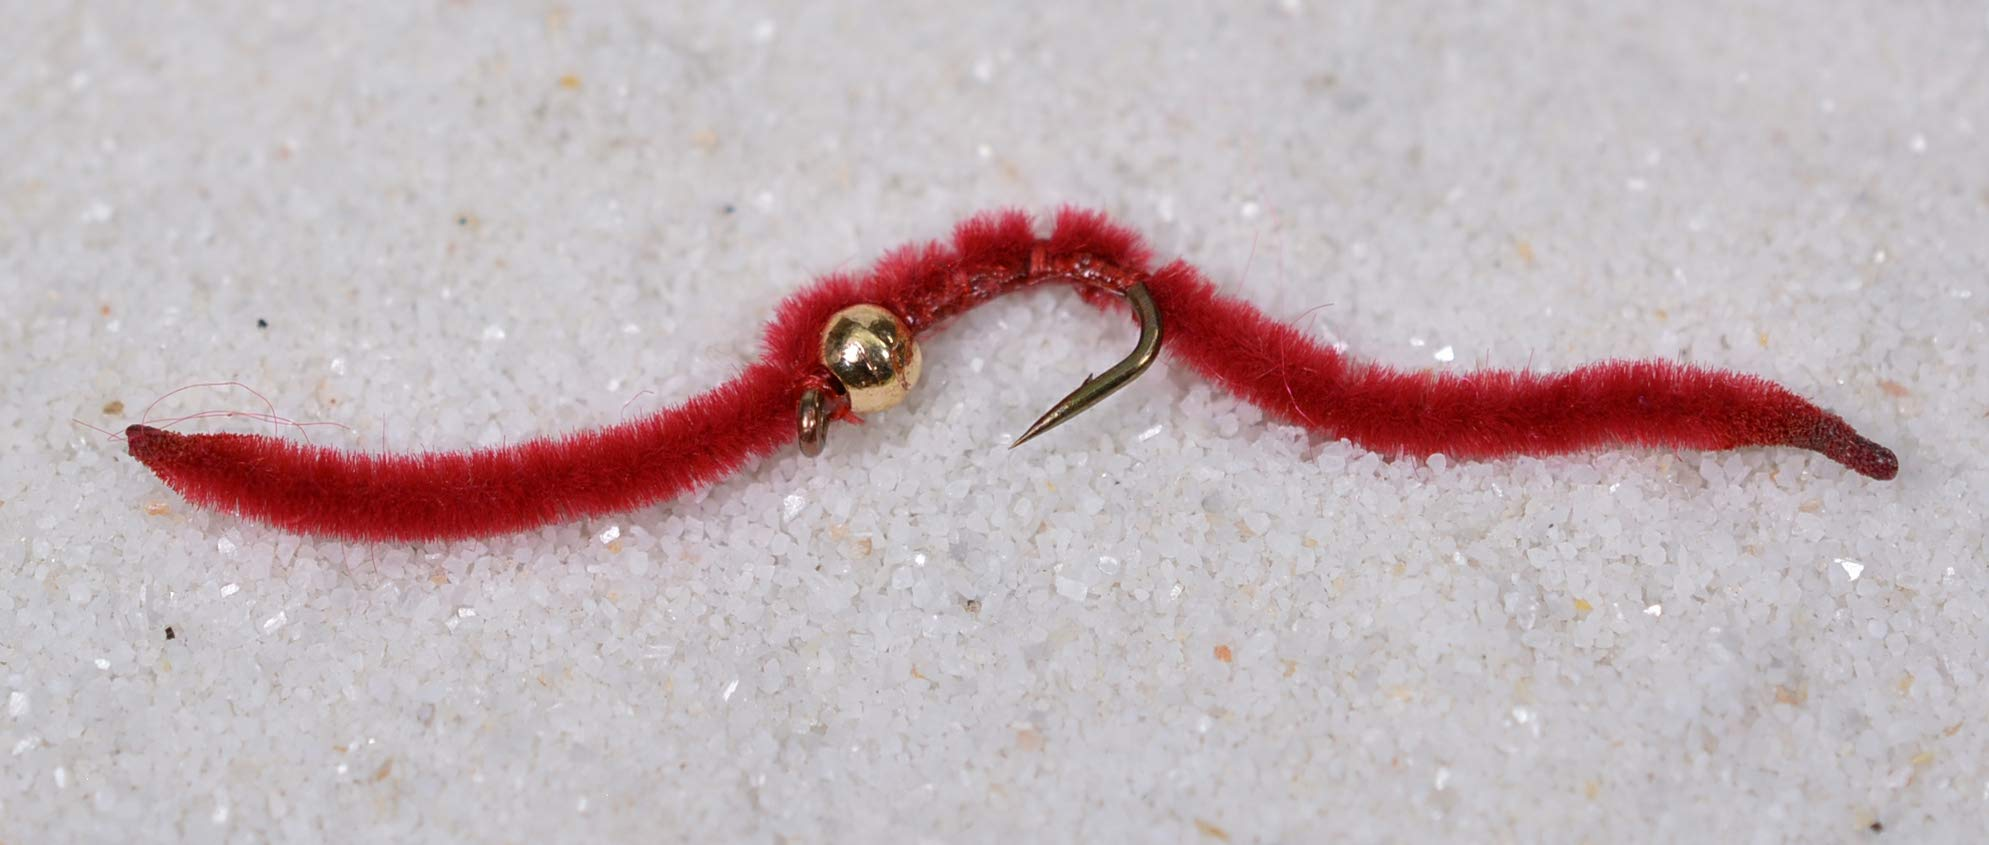 Tungsten Bead Head San Juan Worm Fishing Flies - 1 Dozen on Mustad Signature Fly Hook Size 14 - Red by Region Fishing